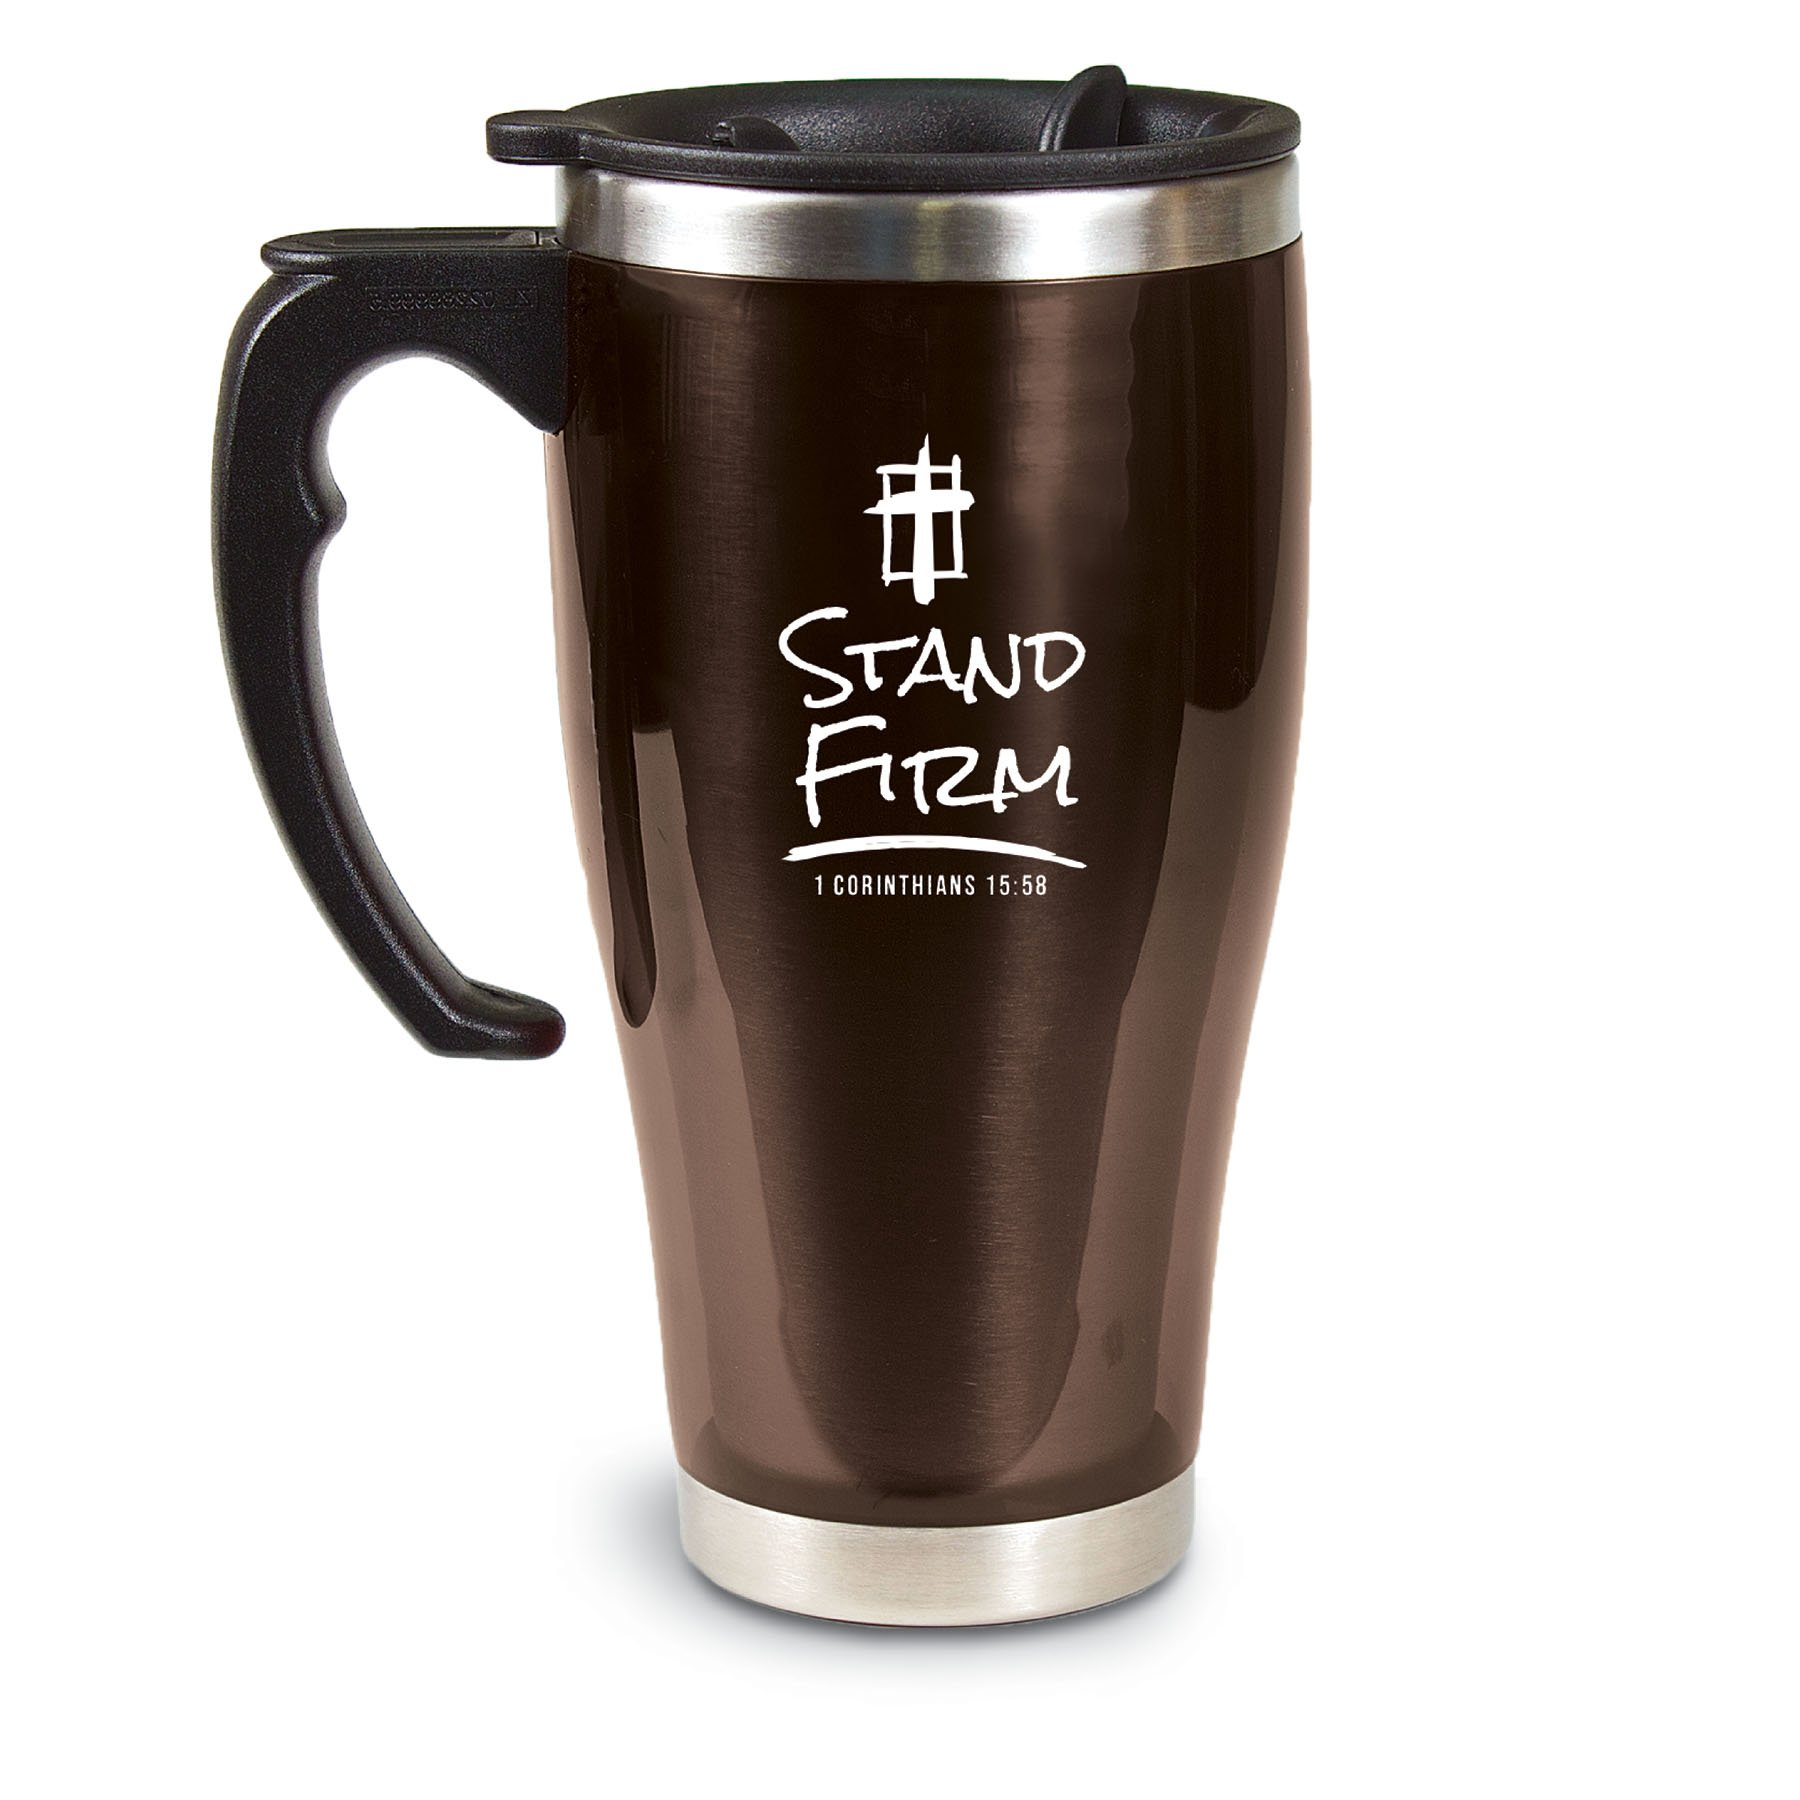 Lighthouse Christian Products Stand Firm Acrylic/Stainless Steel Travel Mug, 18 oz